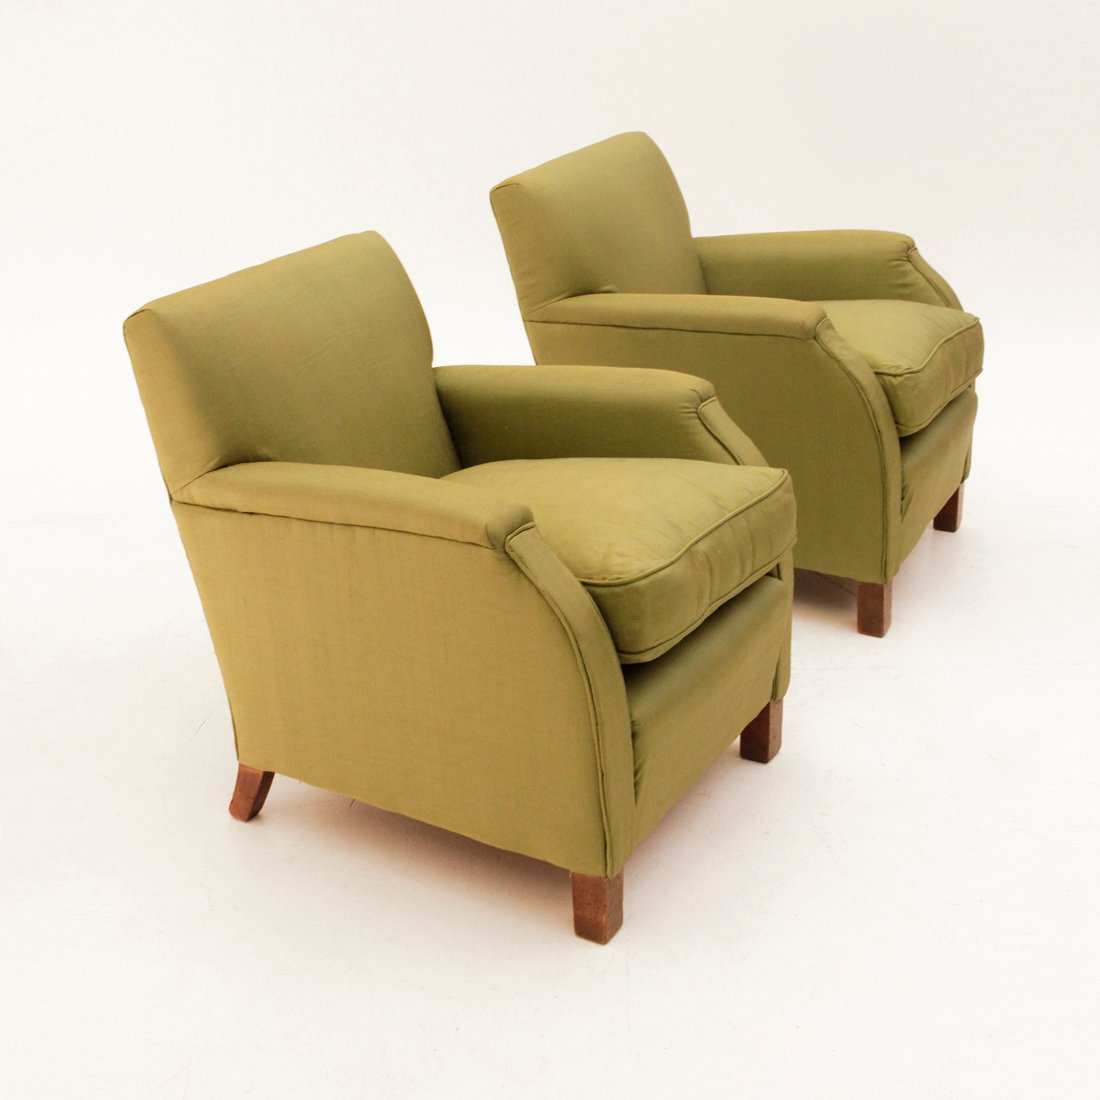 Italian Green Armchairs 1930s Set Of 2 For Sale At Pamono